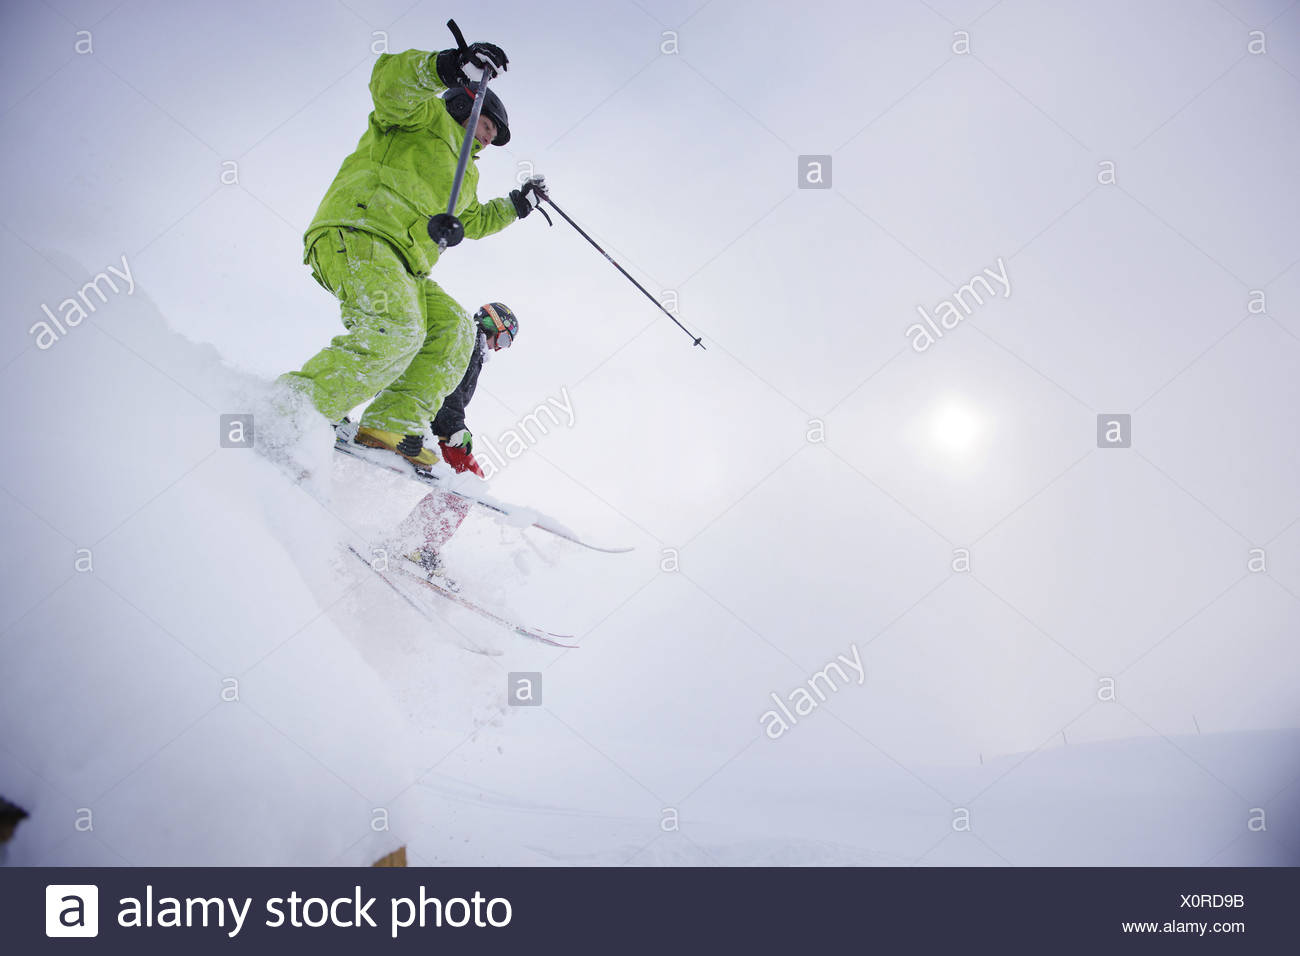 Male free skiers in deep snow, Mayrhofen, Ziller river valley, Tyrol, Austria - Stock Image